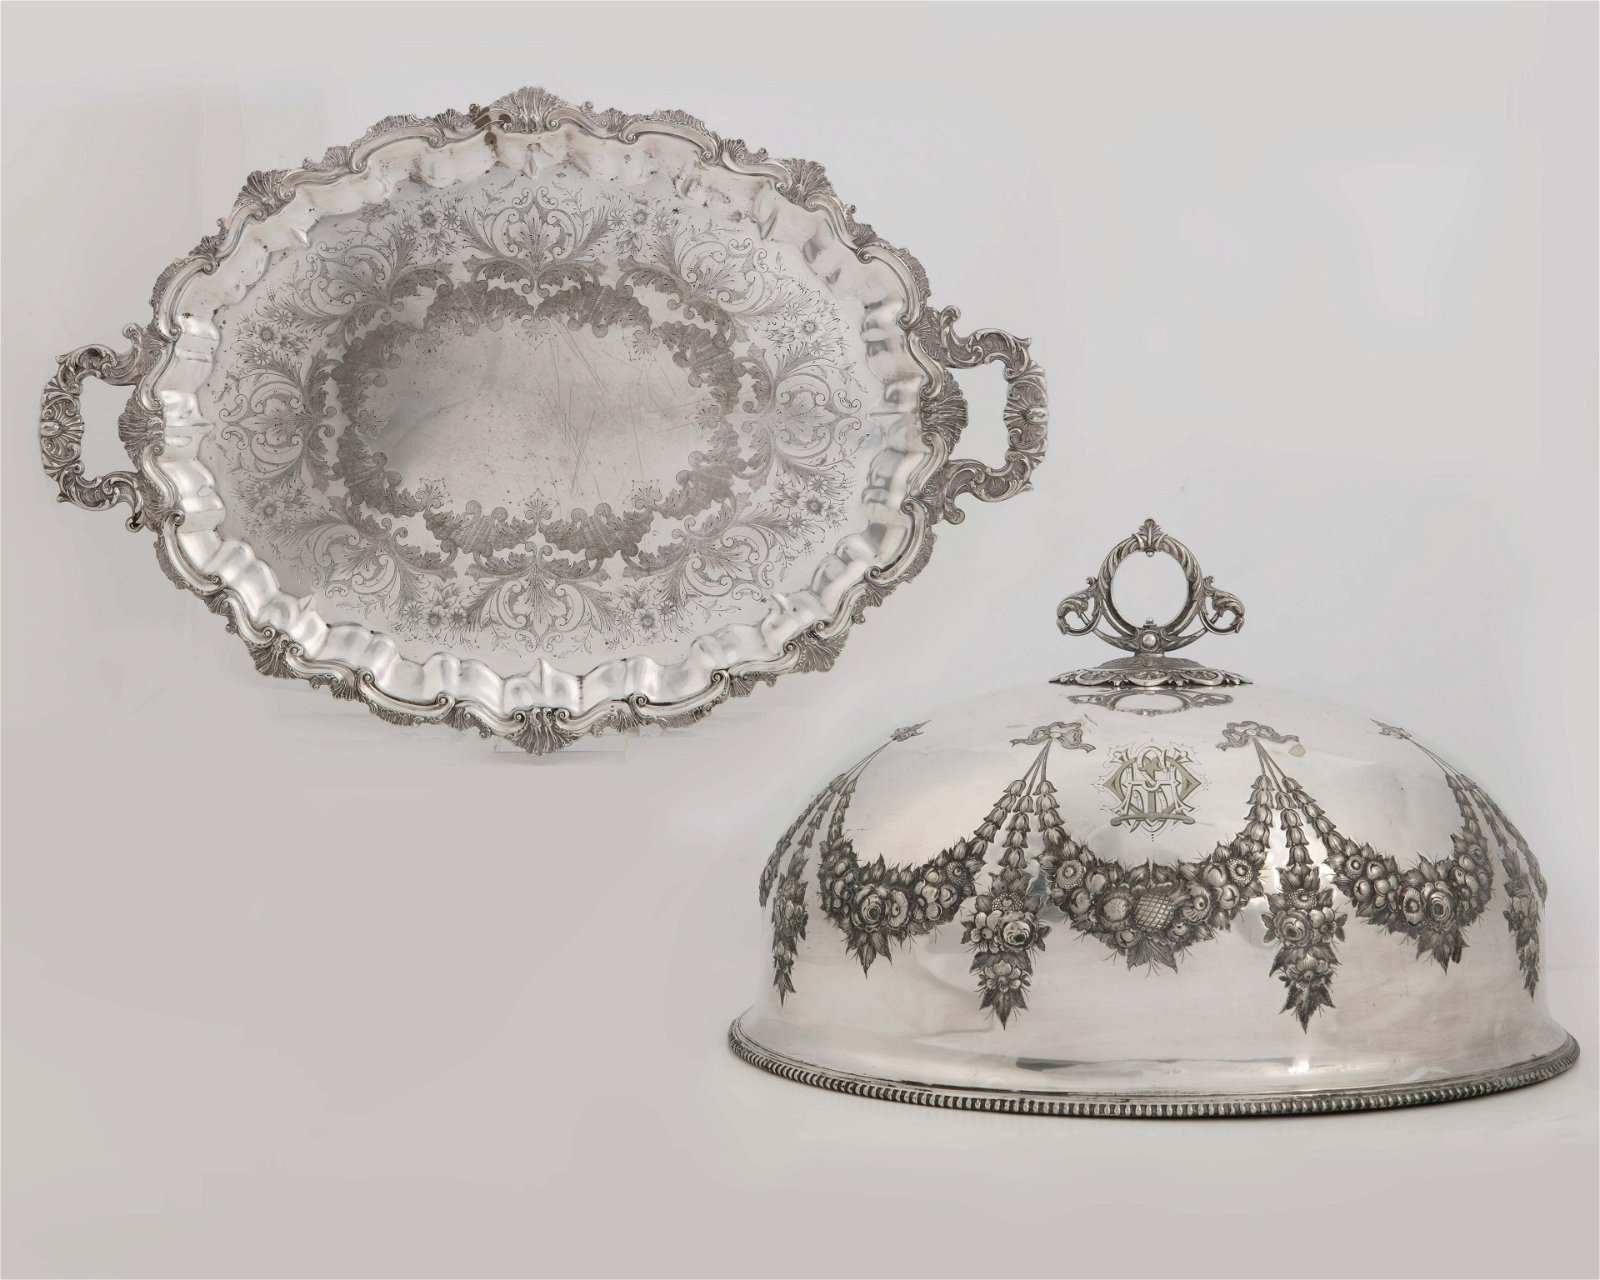 A Victorian silverplate meat dome and a tray